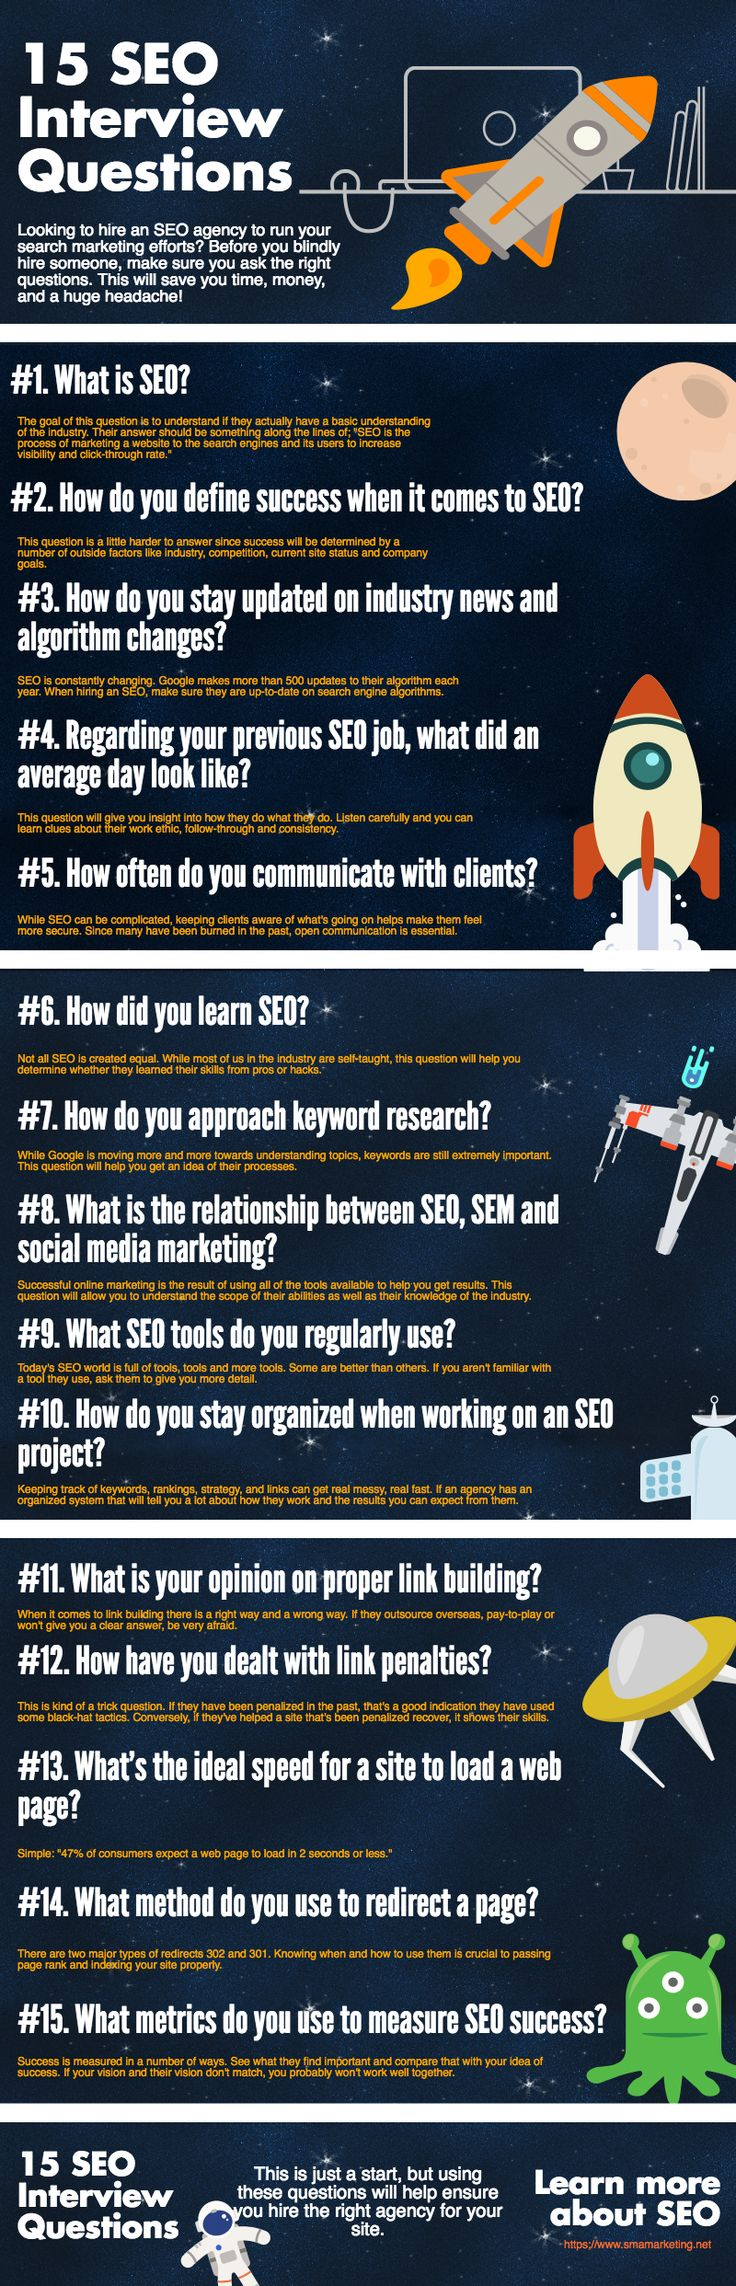 Can You Trust Them? 15 Questions to Ask an SEO Company #Infographic #SEOTips